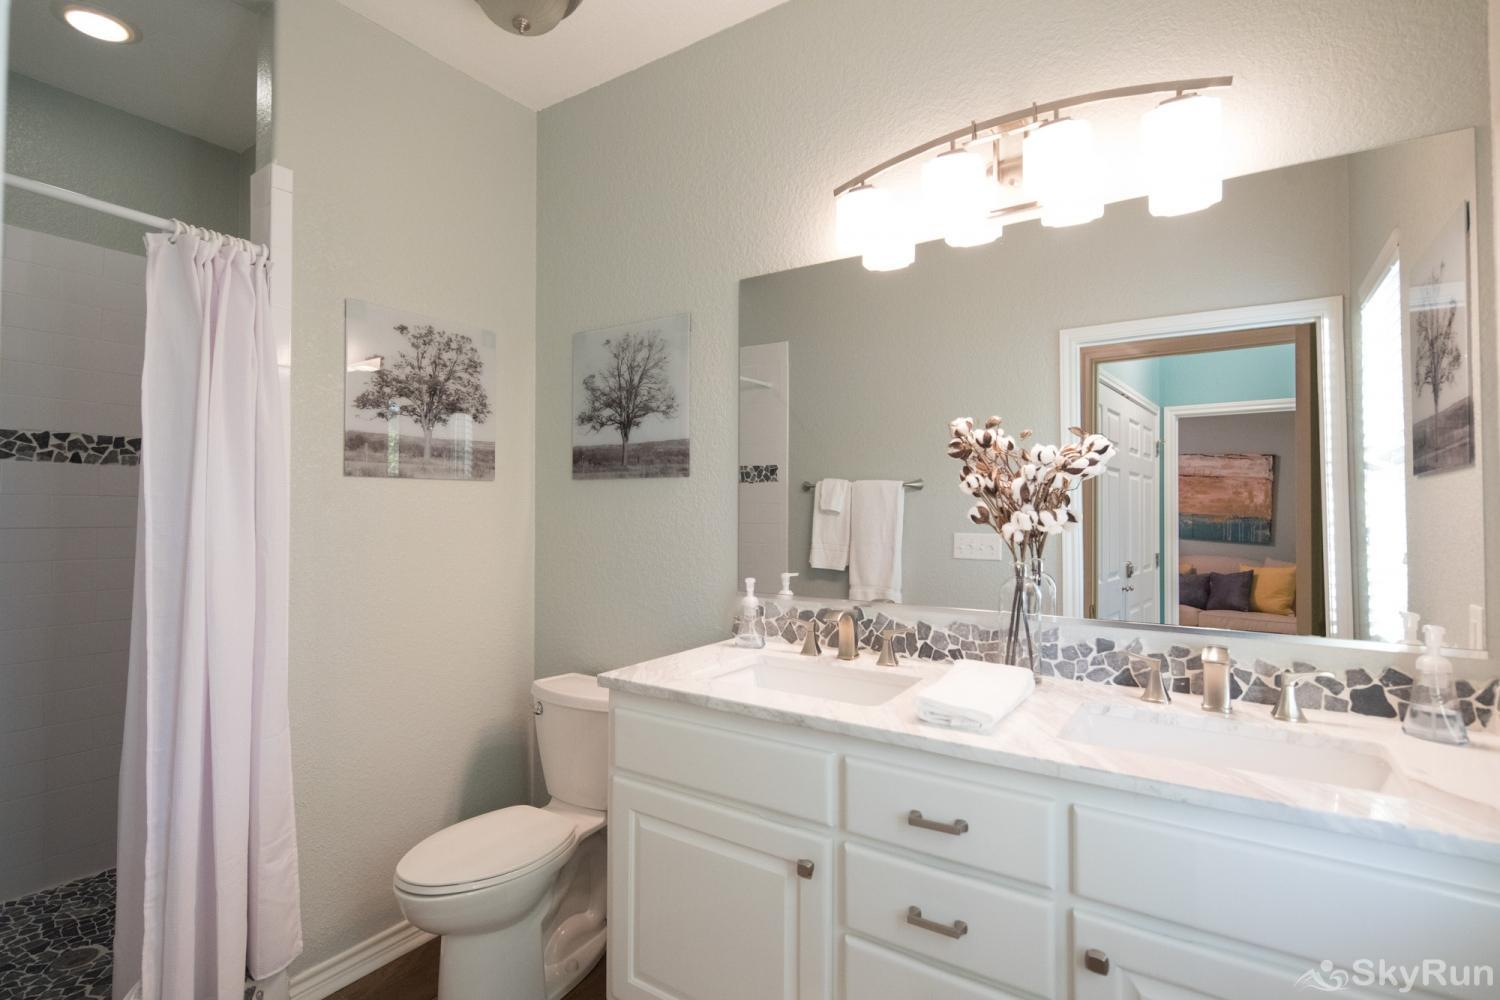 PARADISE POINTE Master Bathroom with Tiled, Walk- in Shower